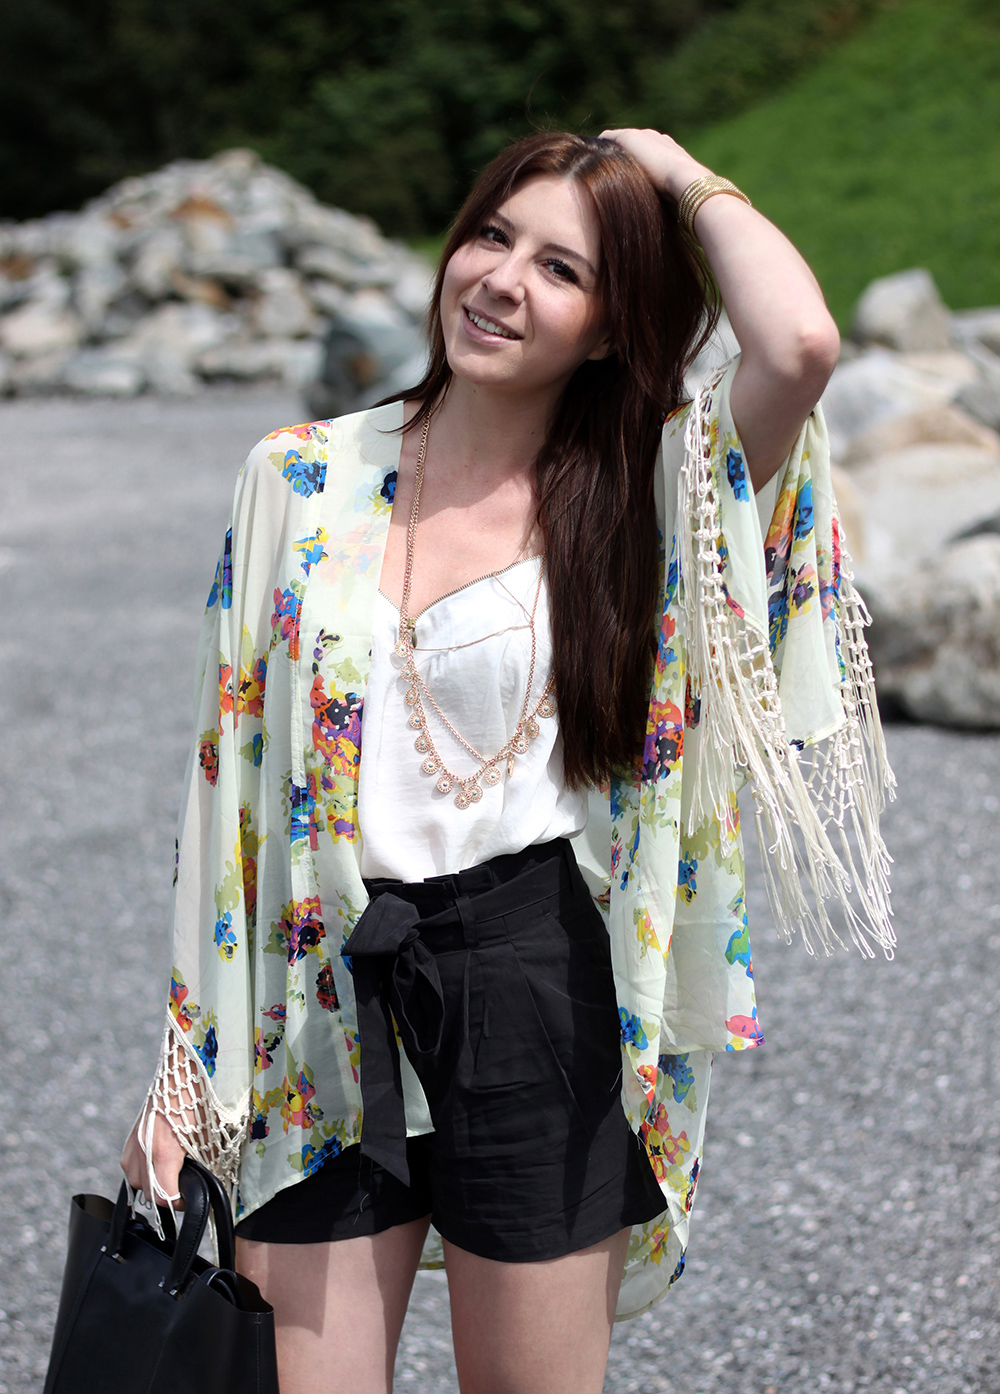 whoismocca, fashionblog tirol, fashionblog österreich, asos kimono, blumen fransen kimono, high heels sandaletten H&M, High waist shorts H&M, Shirt Satin New Yorker, Kette Forever21, Shopper & other stores, Great Lengths Extensions